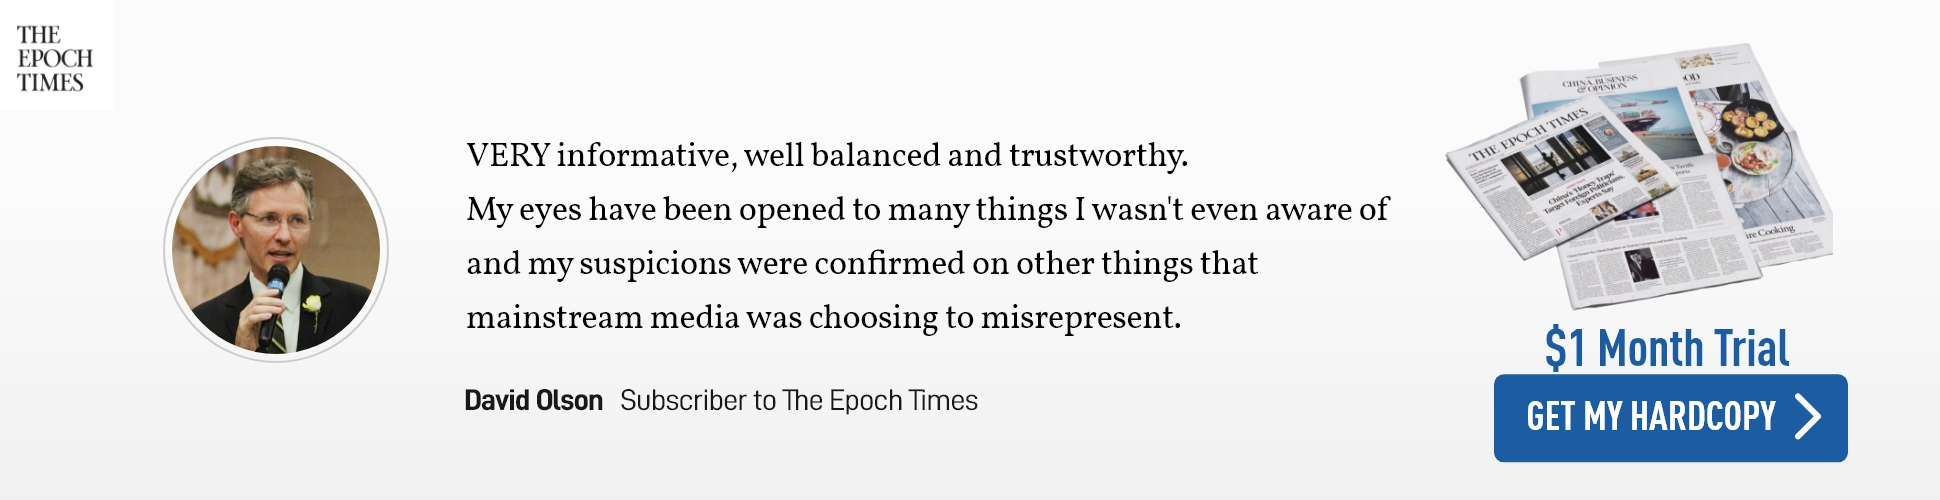 Subscribe to The Epoch Times